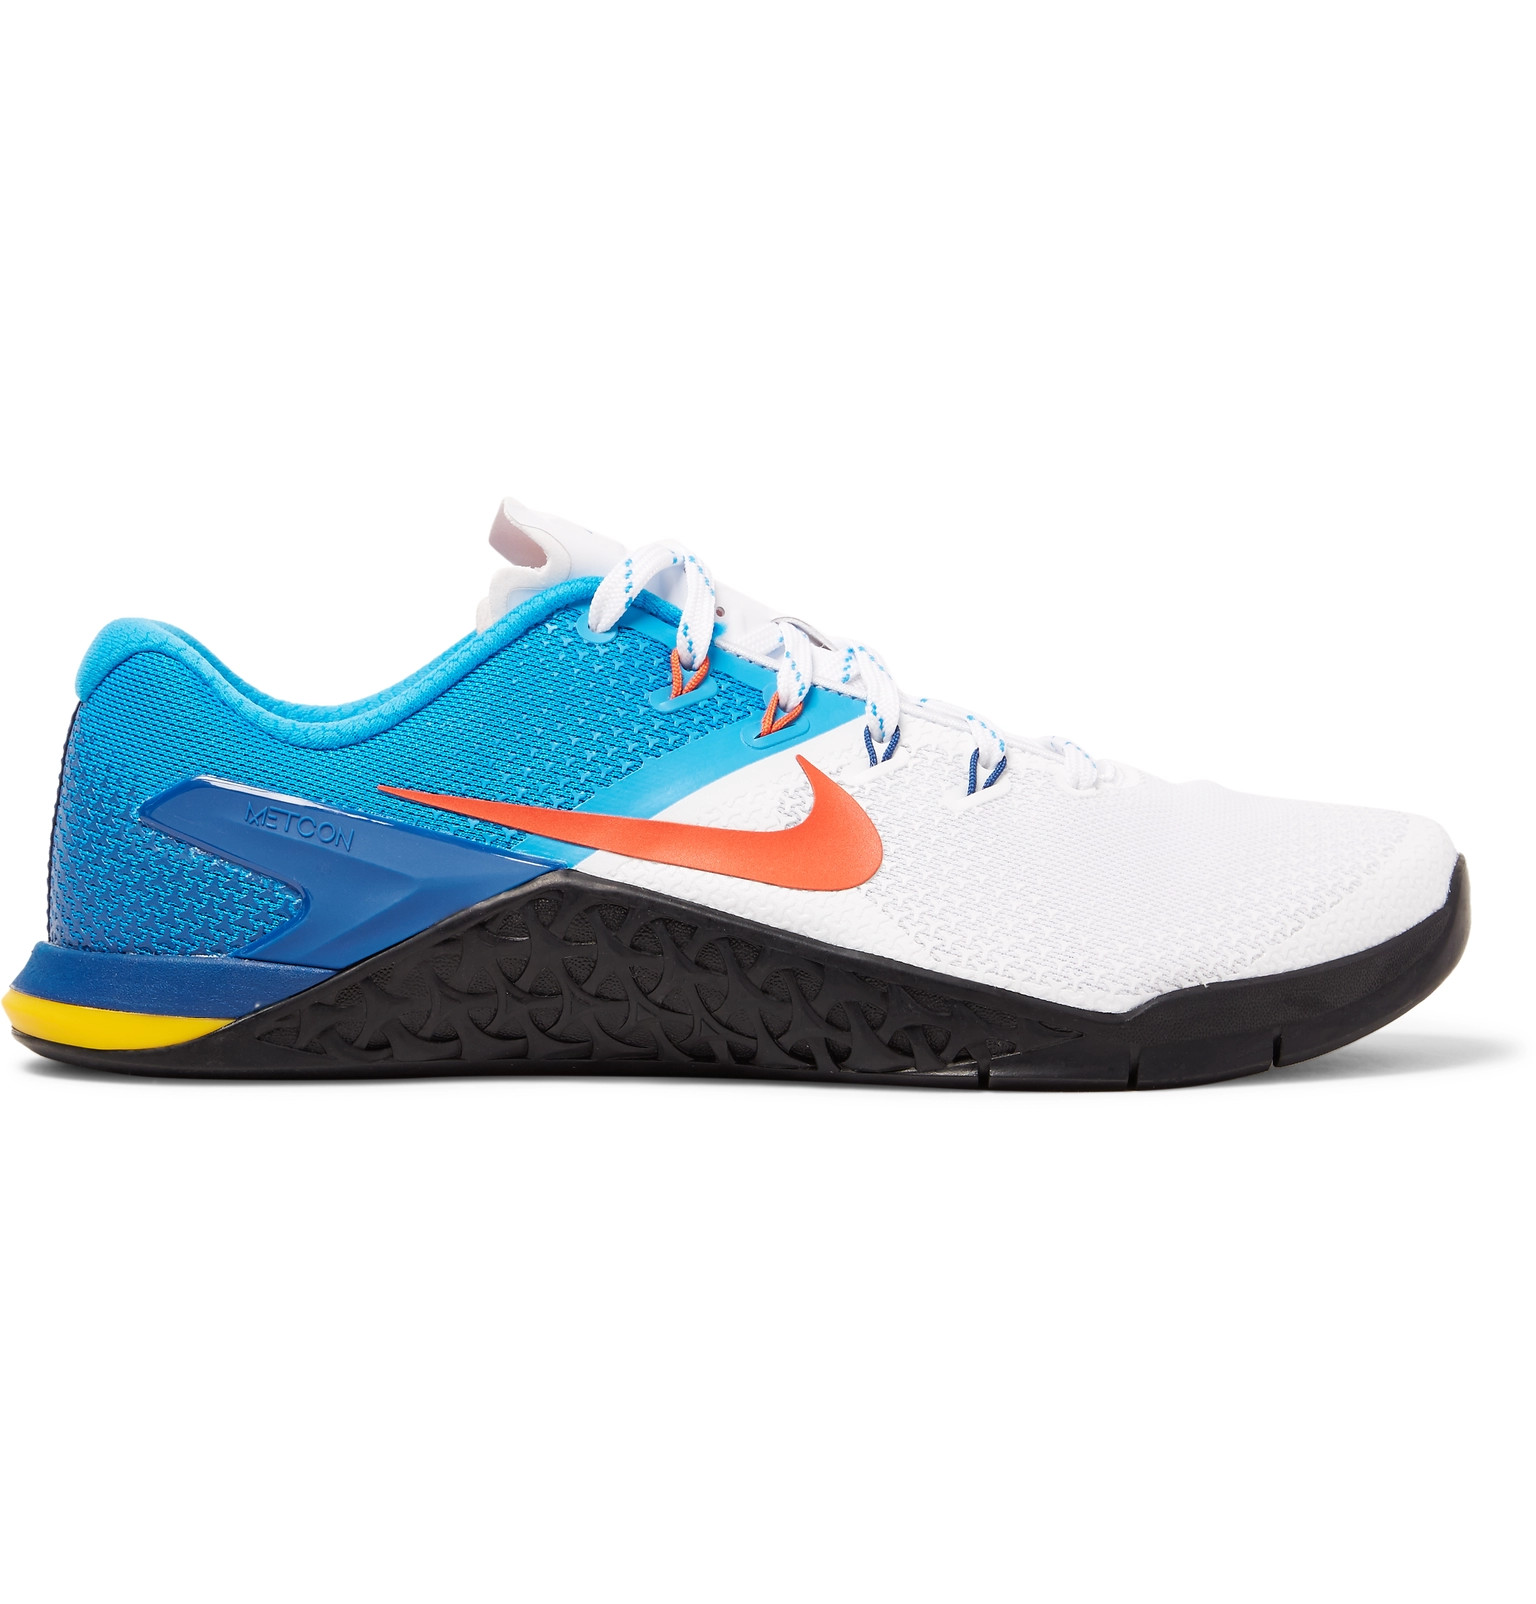 089772e1c8b5 Nike Training - Metcon DSX 2 Flyknit and Rubber Sneakers